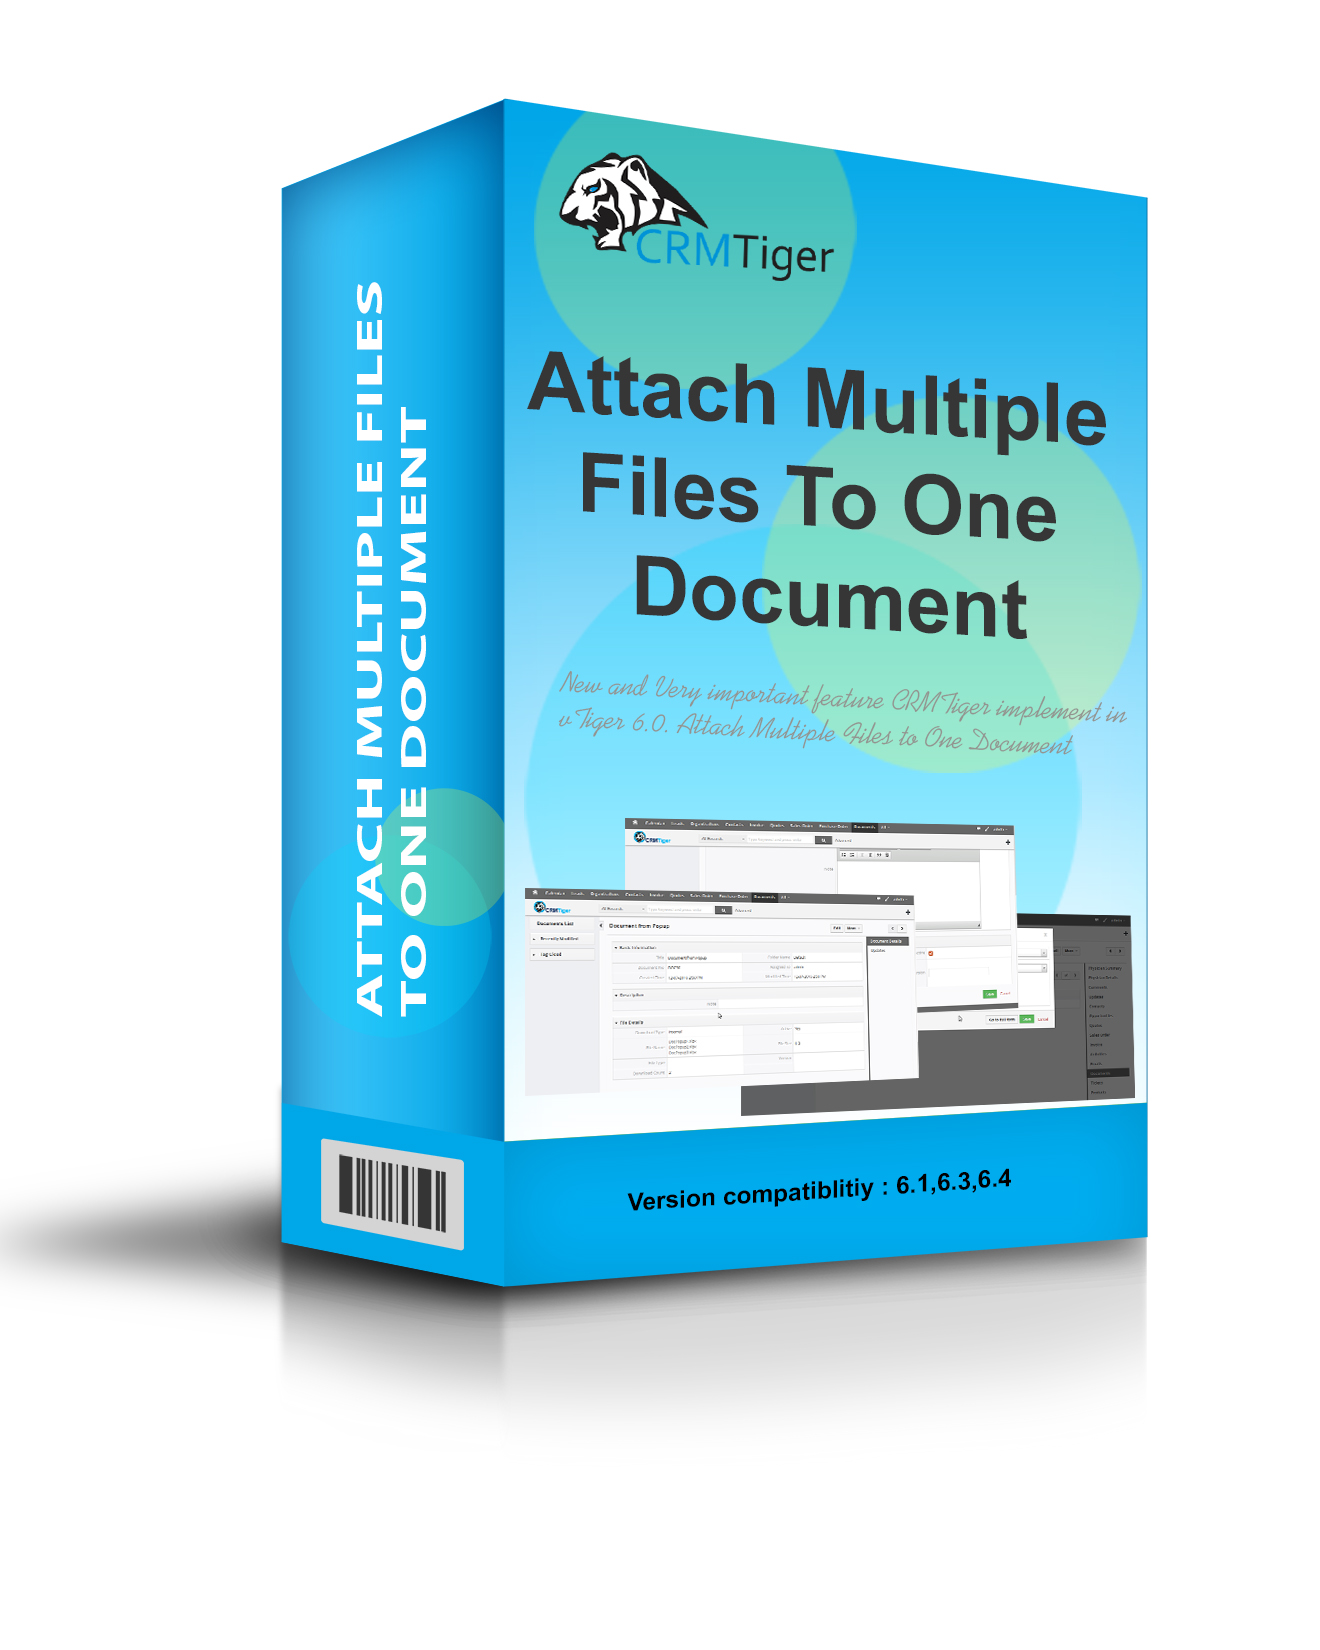 AttachMultipleFilesToOneDocument